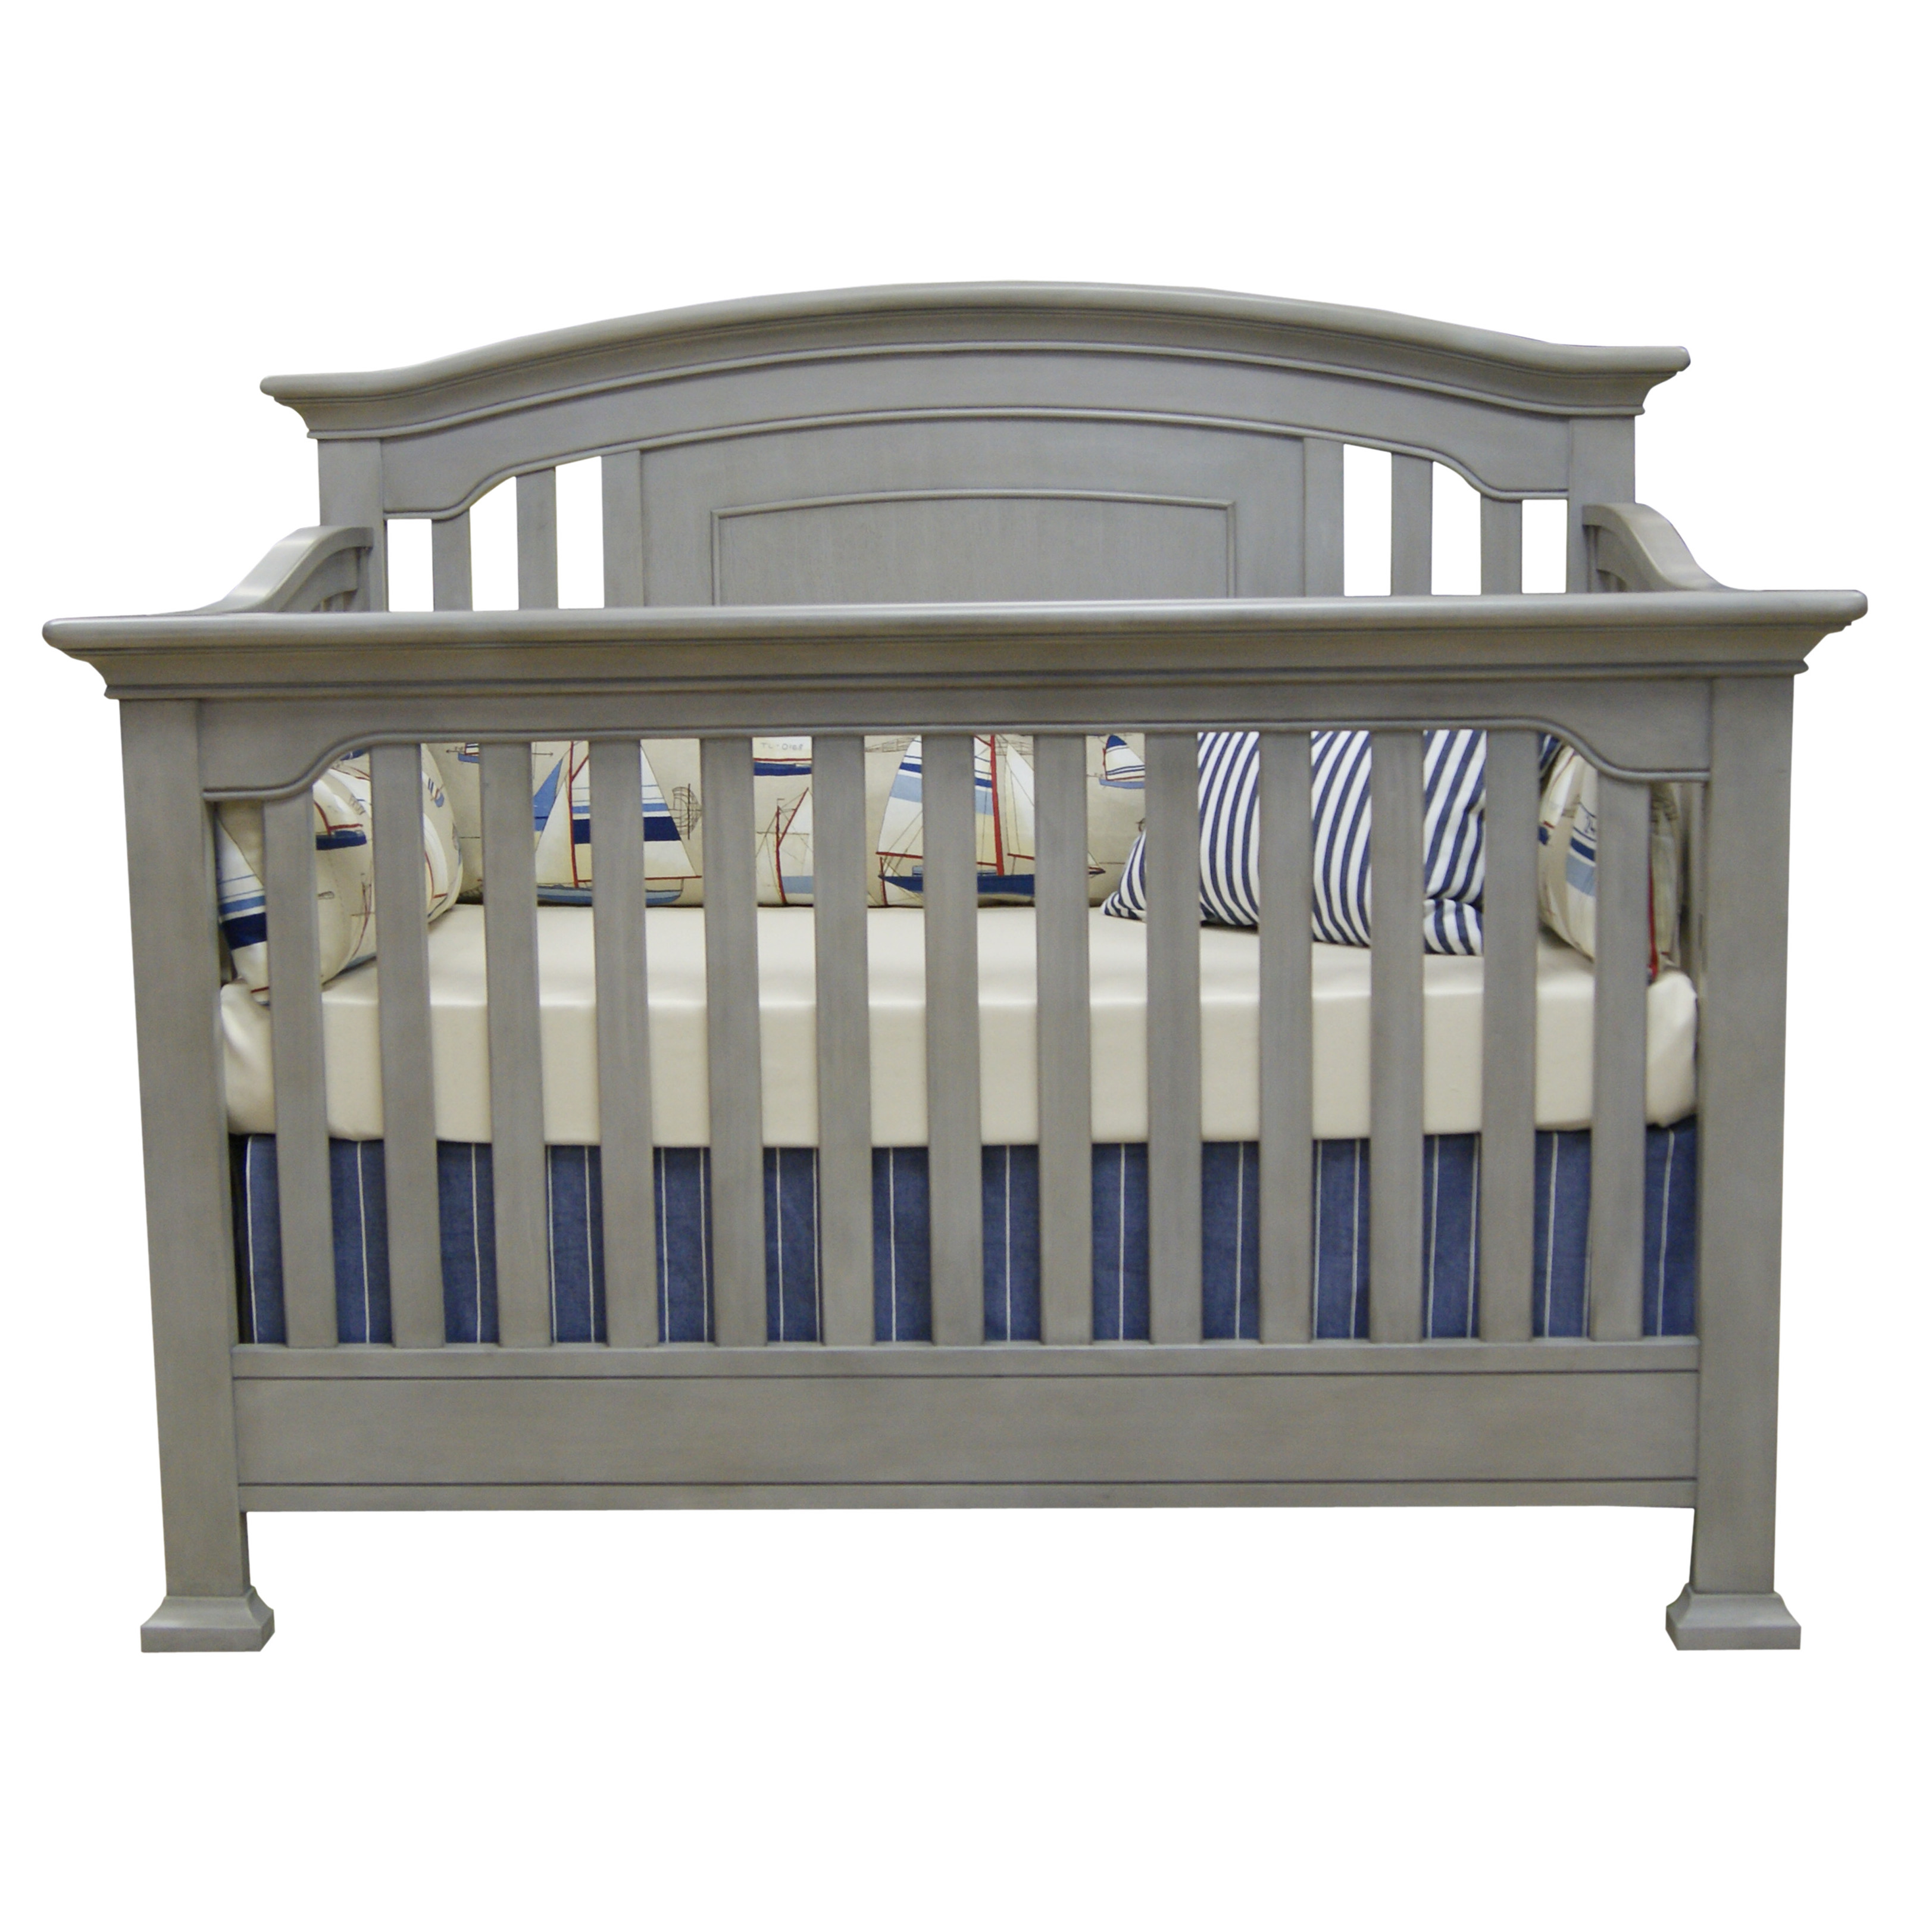 Baby Cache Toddler Bed | Baby Cache Heritage Lifetime Convertible Crib | Babies R Us Baby Furniture